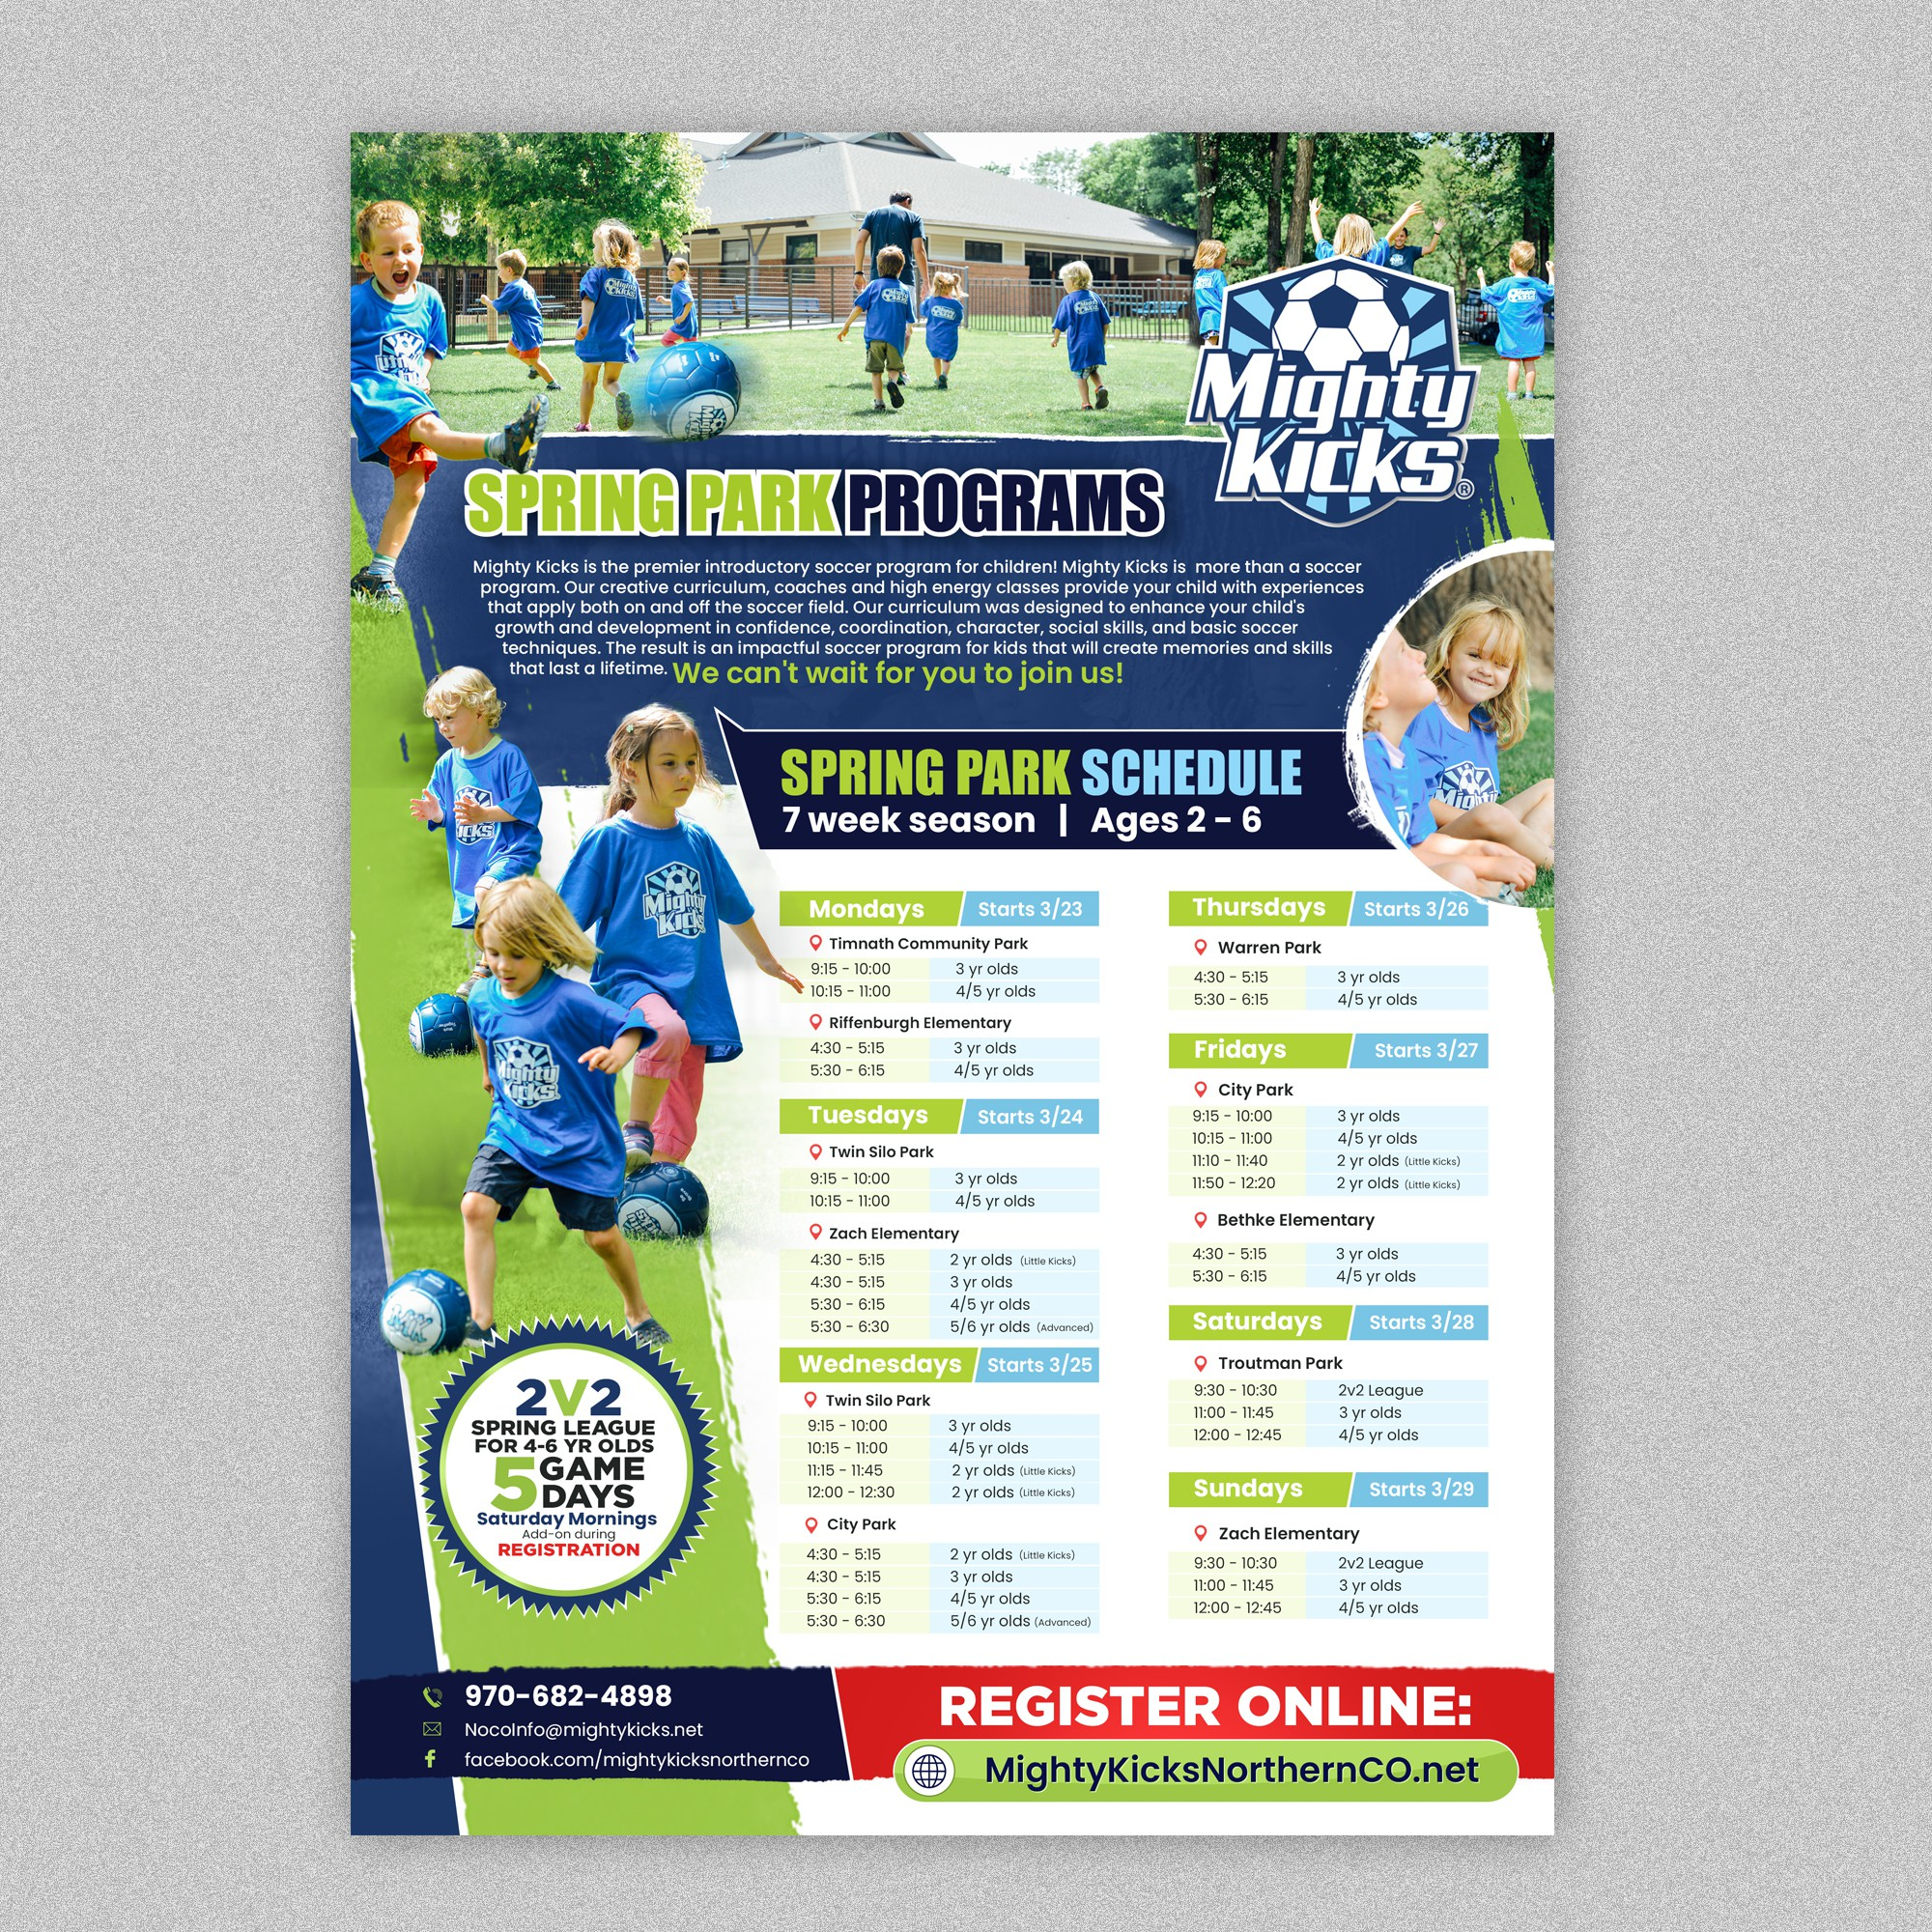 Engaging flyer for youth soccer program